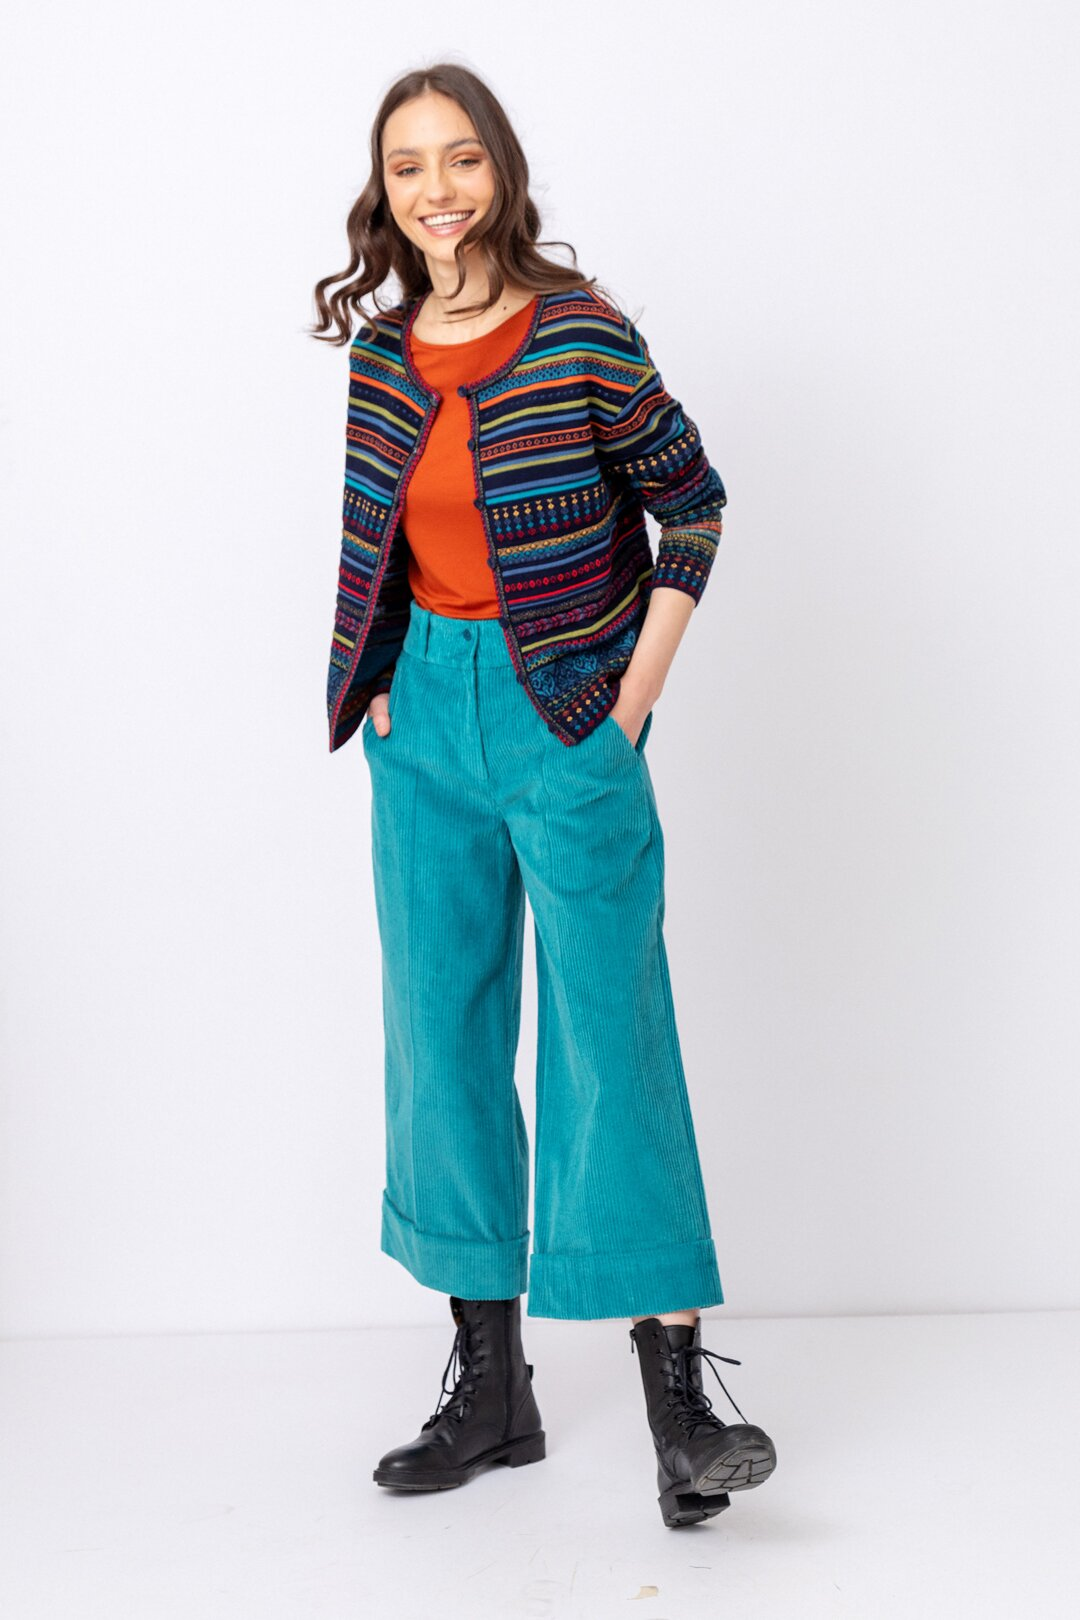 outfit-7c8a0833